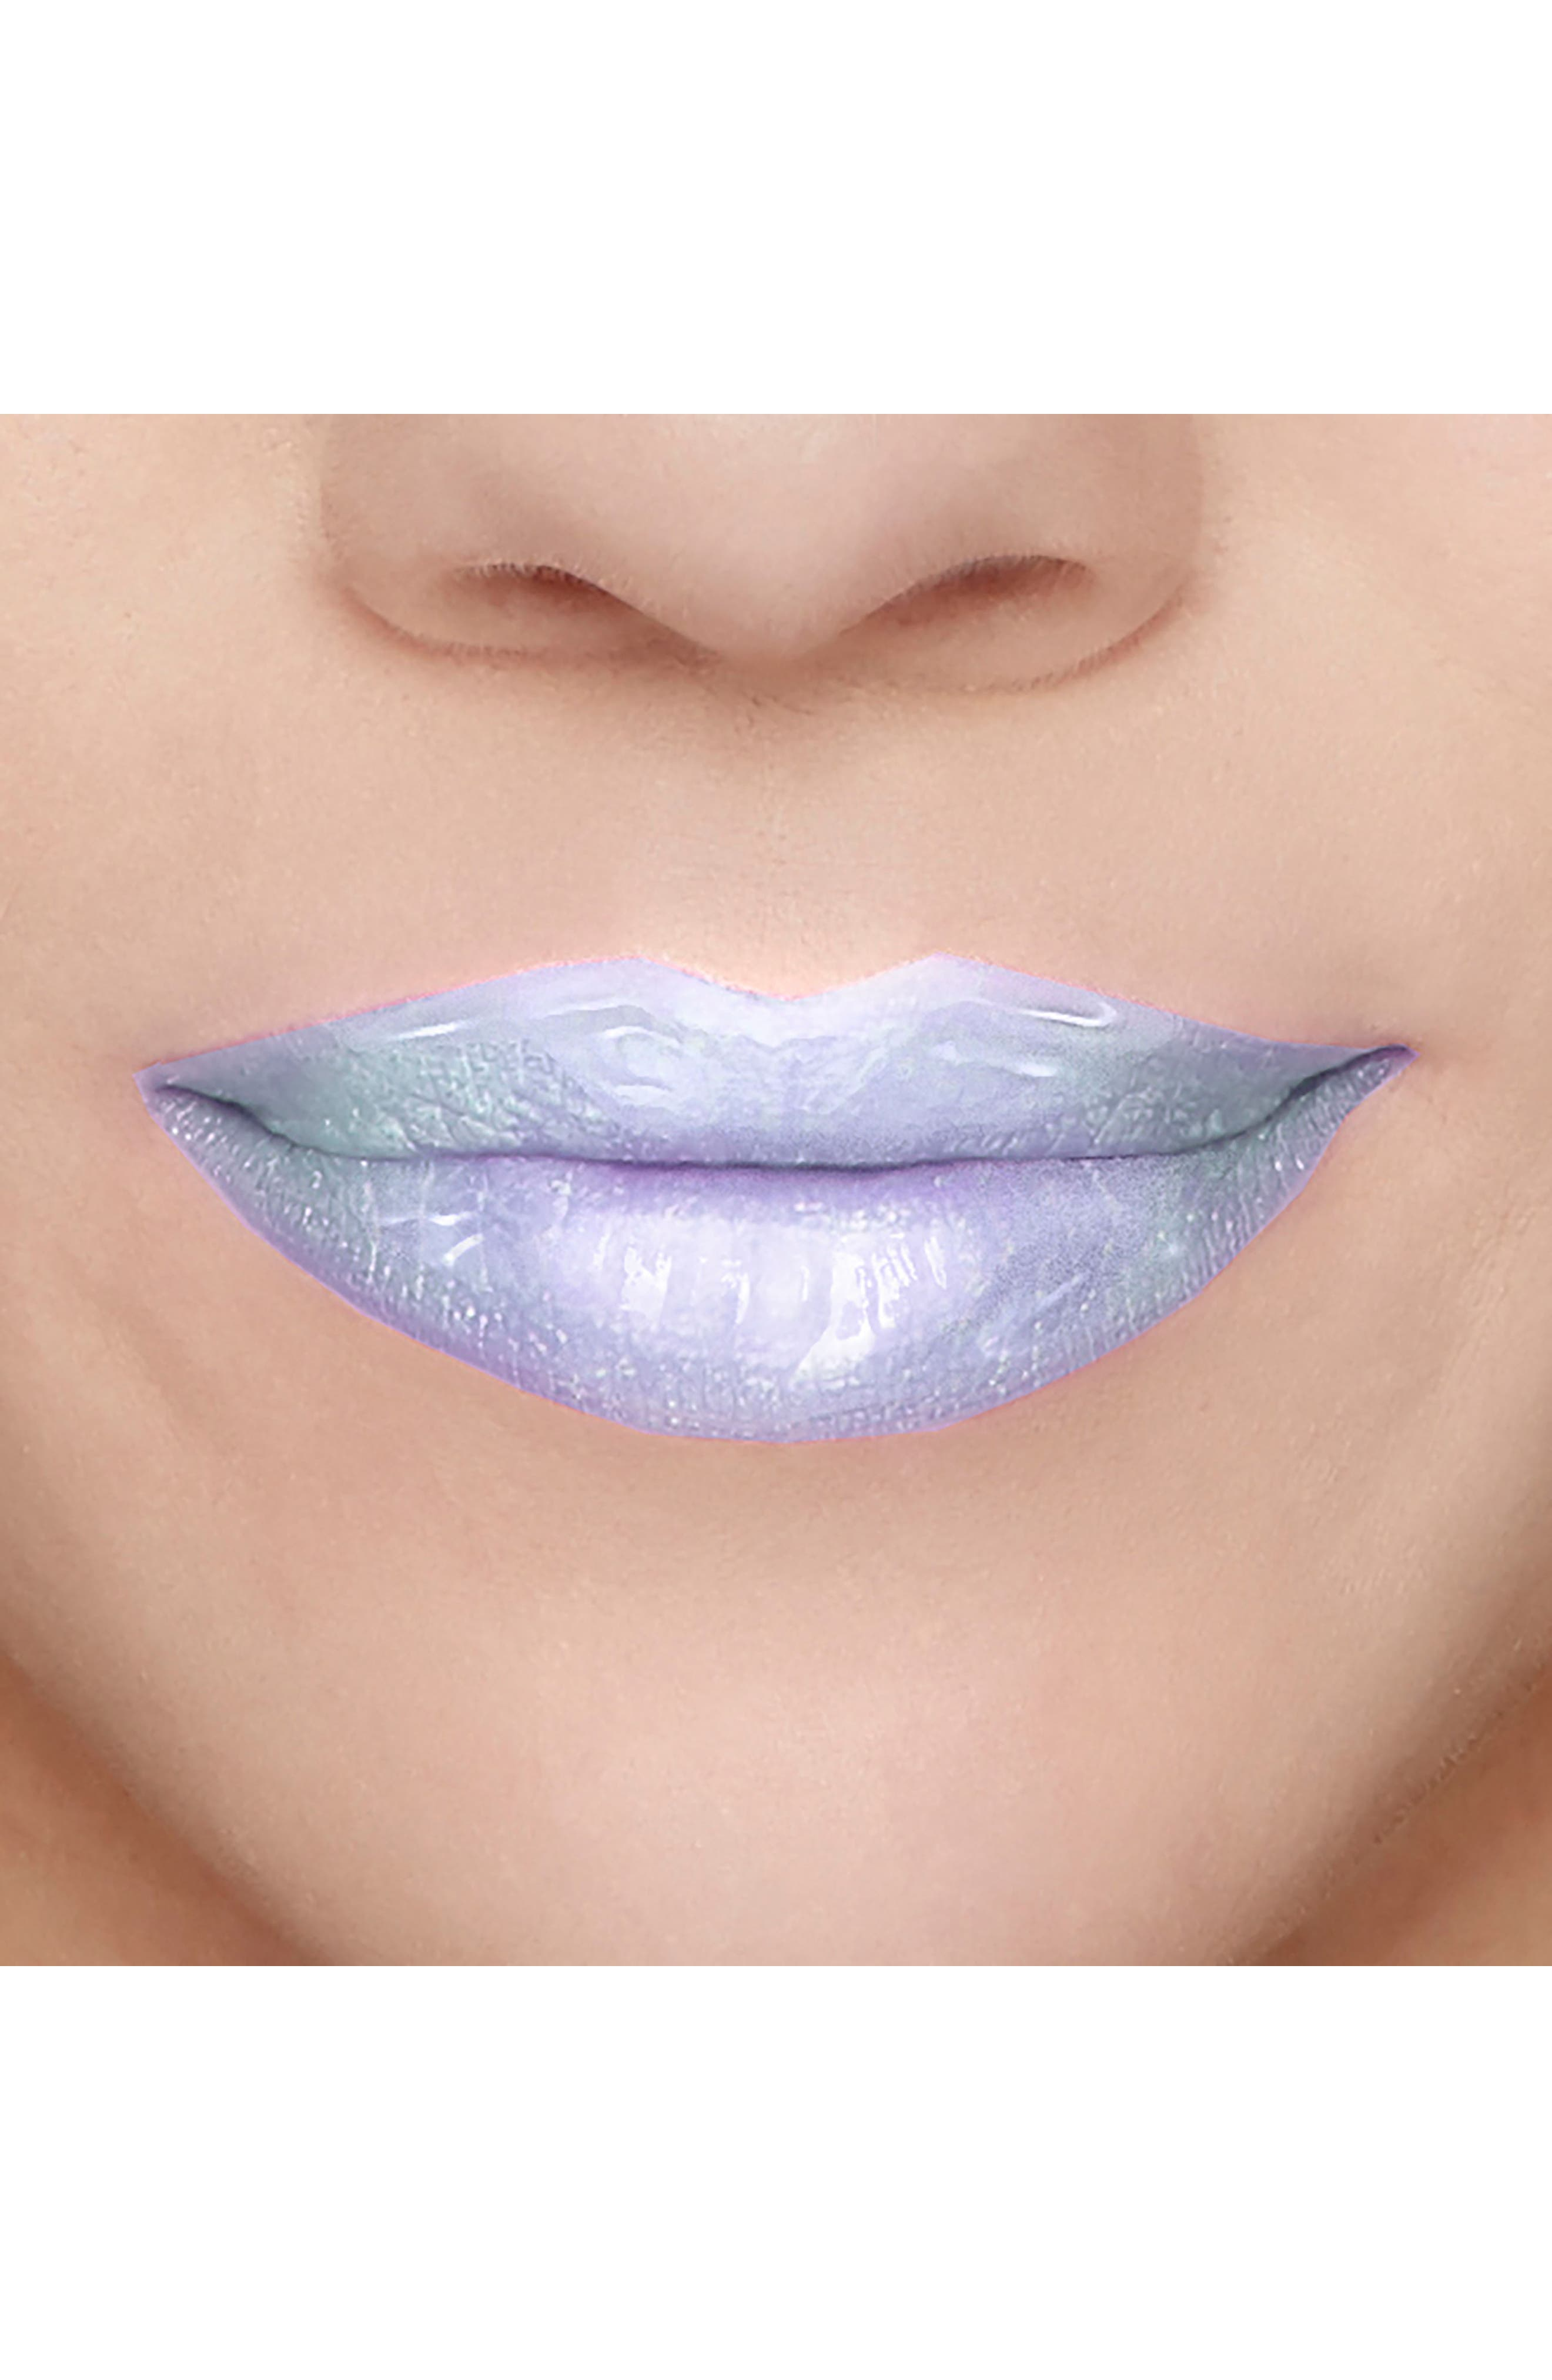 Melted Latex Unicorn Tears Lipstick,                             Alternate thumbnail 4, color,